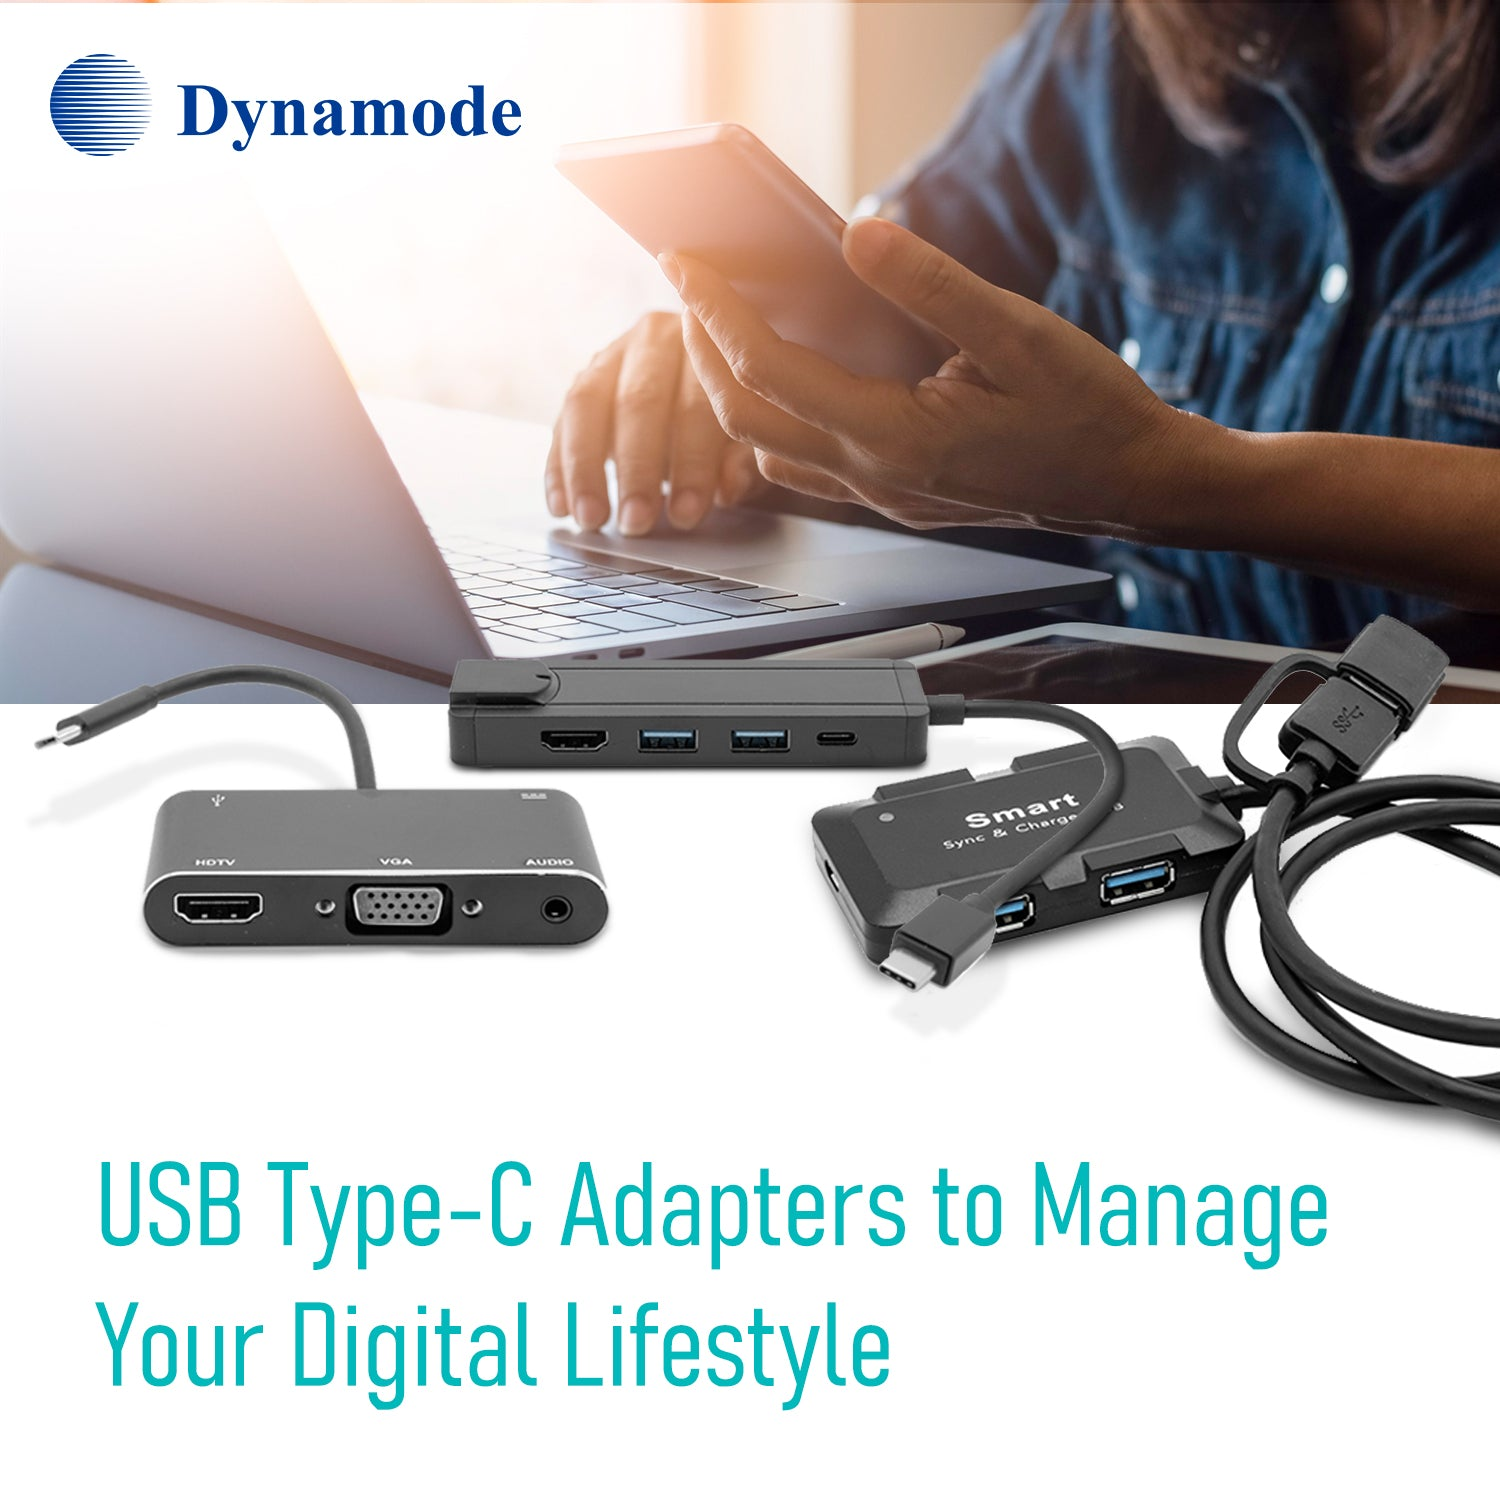 USB Type-C to USB Sync and Charge Cable 1 metre length (C-USB-T-C-BX)